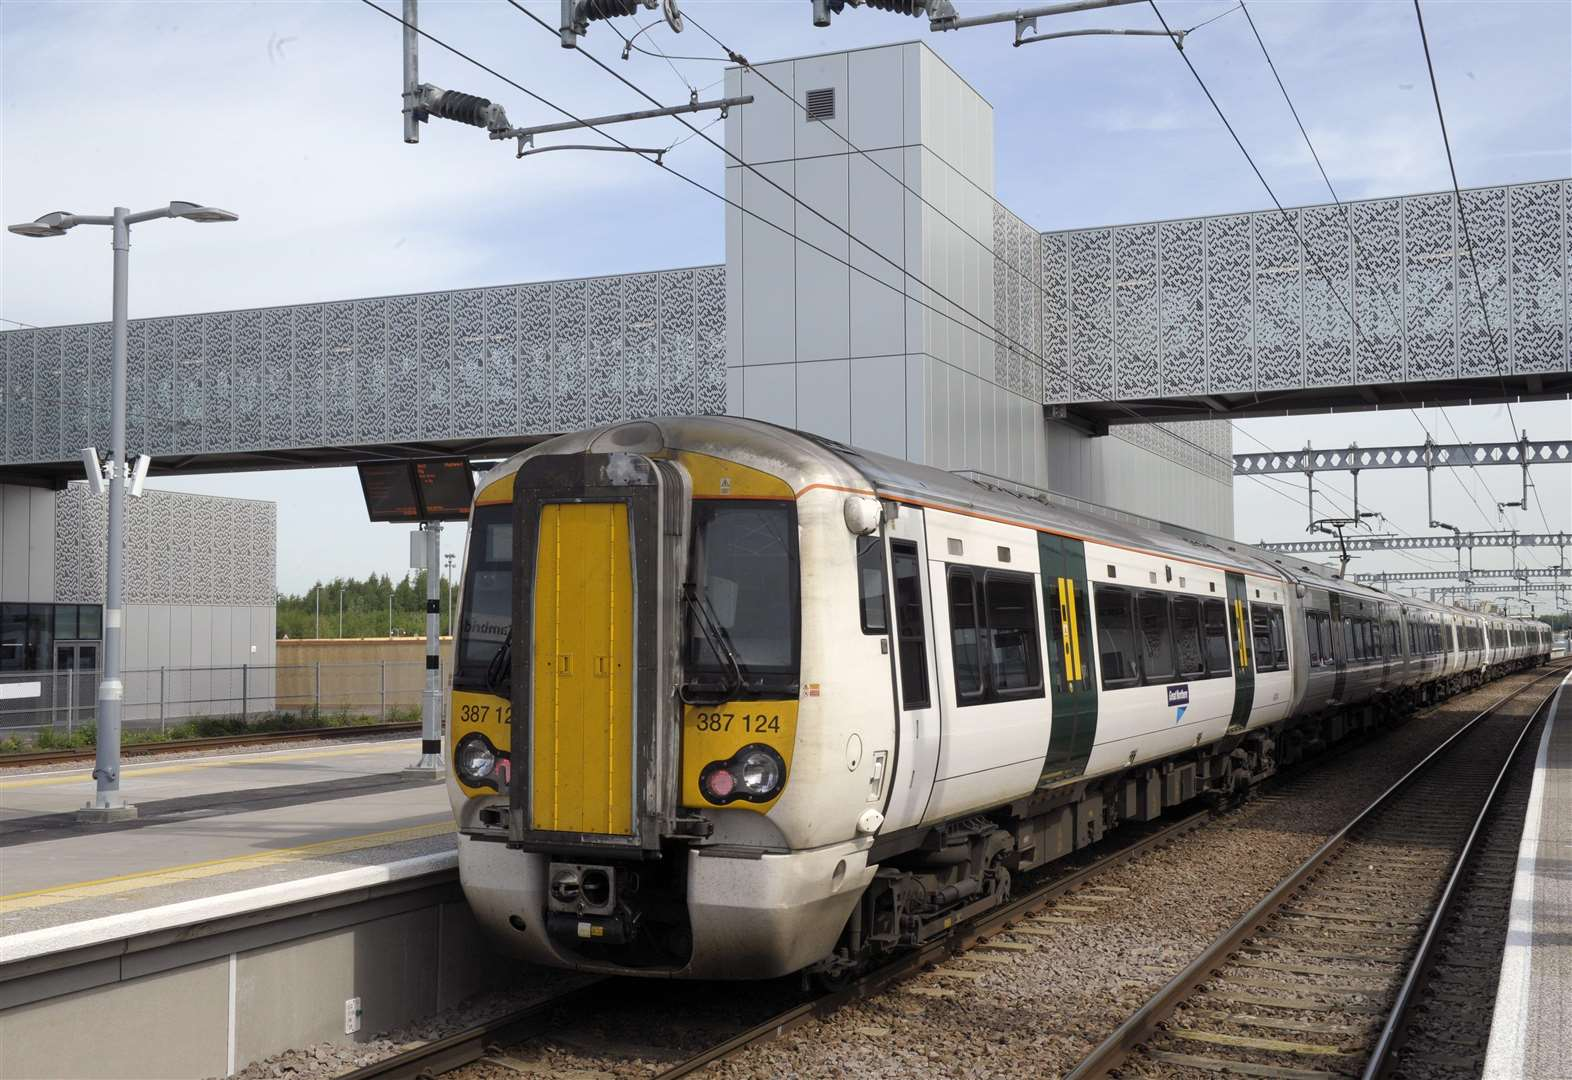 West Norfolk train company criticised over timetable changes in report